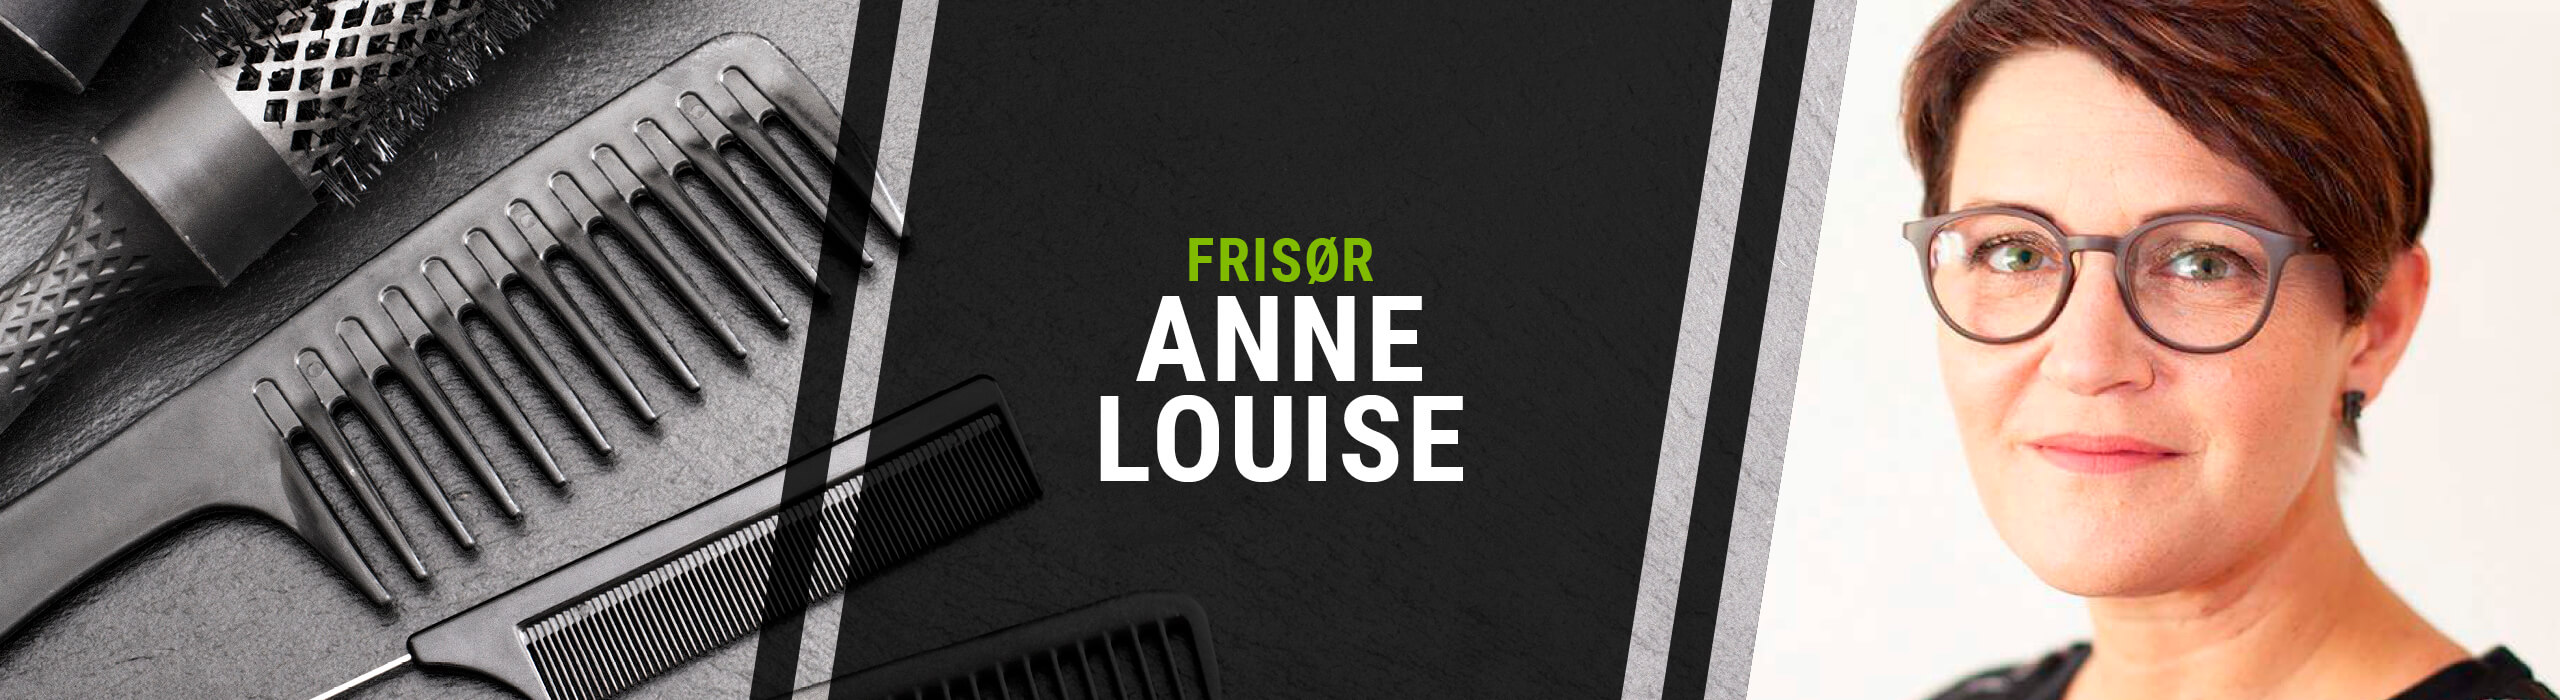 Frisør Anne Louise